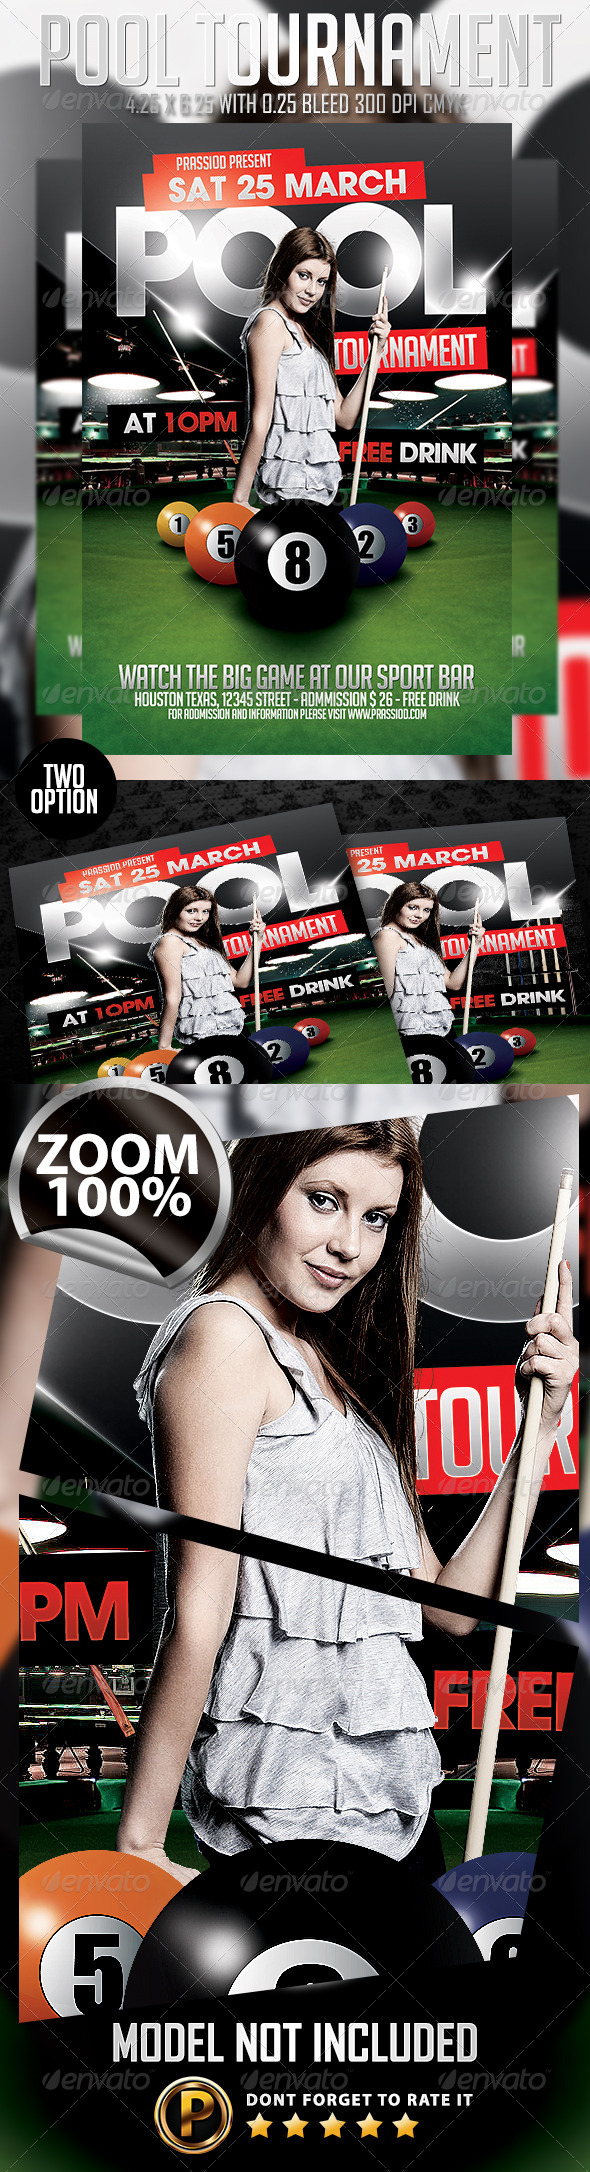 Pool Tournament Flyer Template - Events Flyers